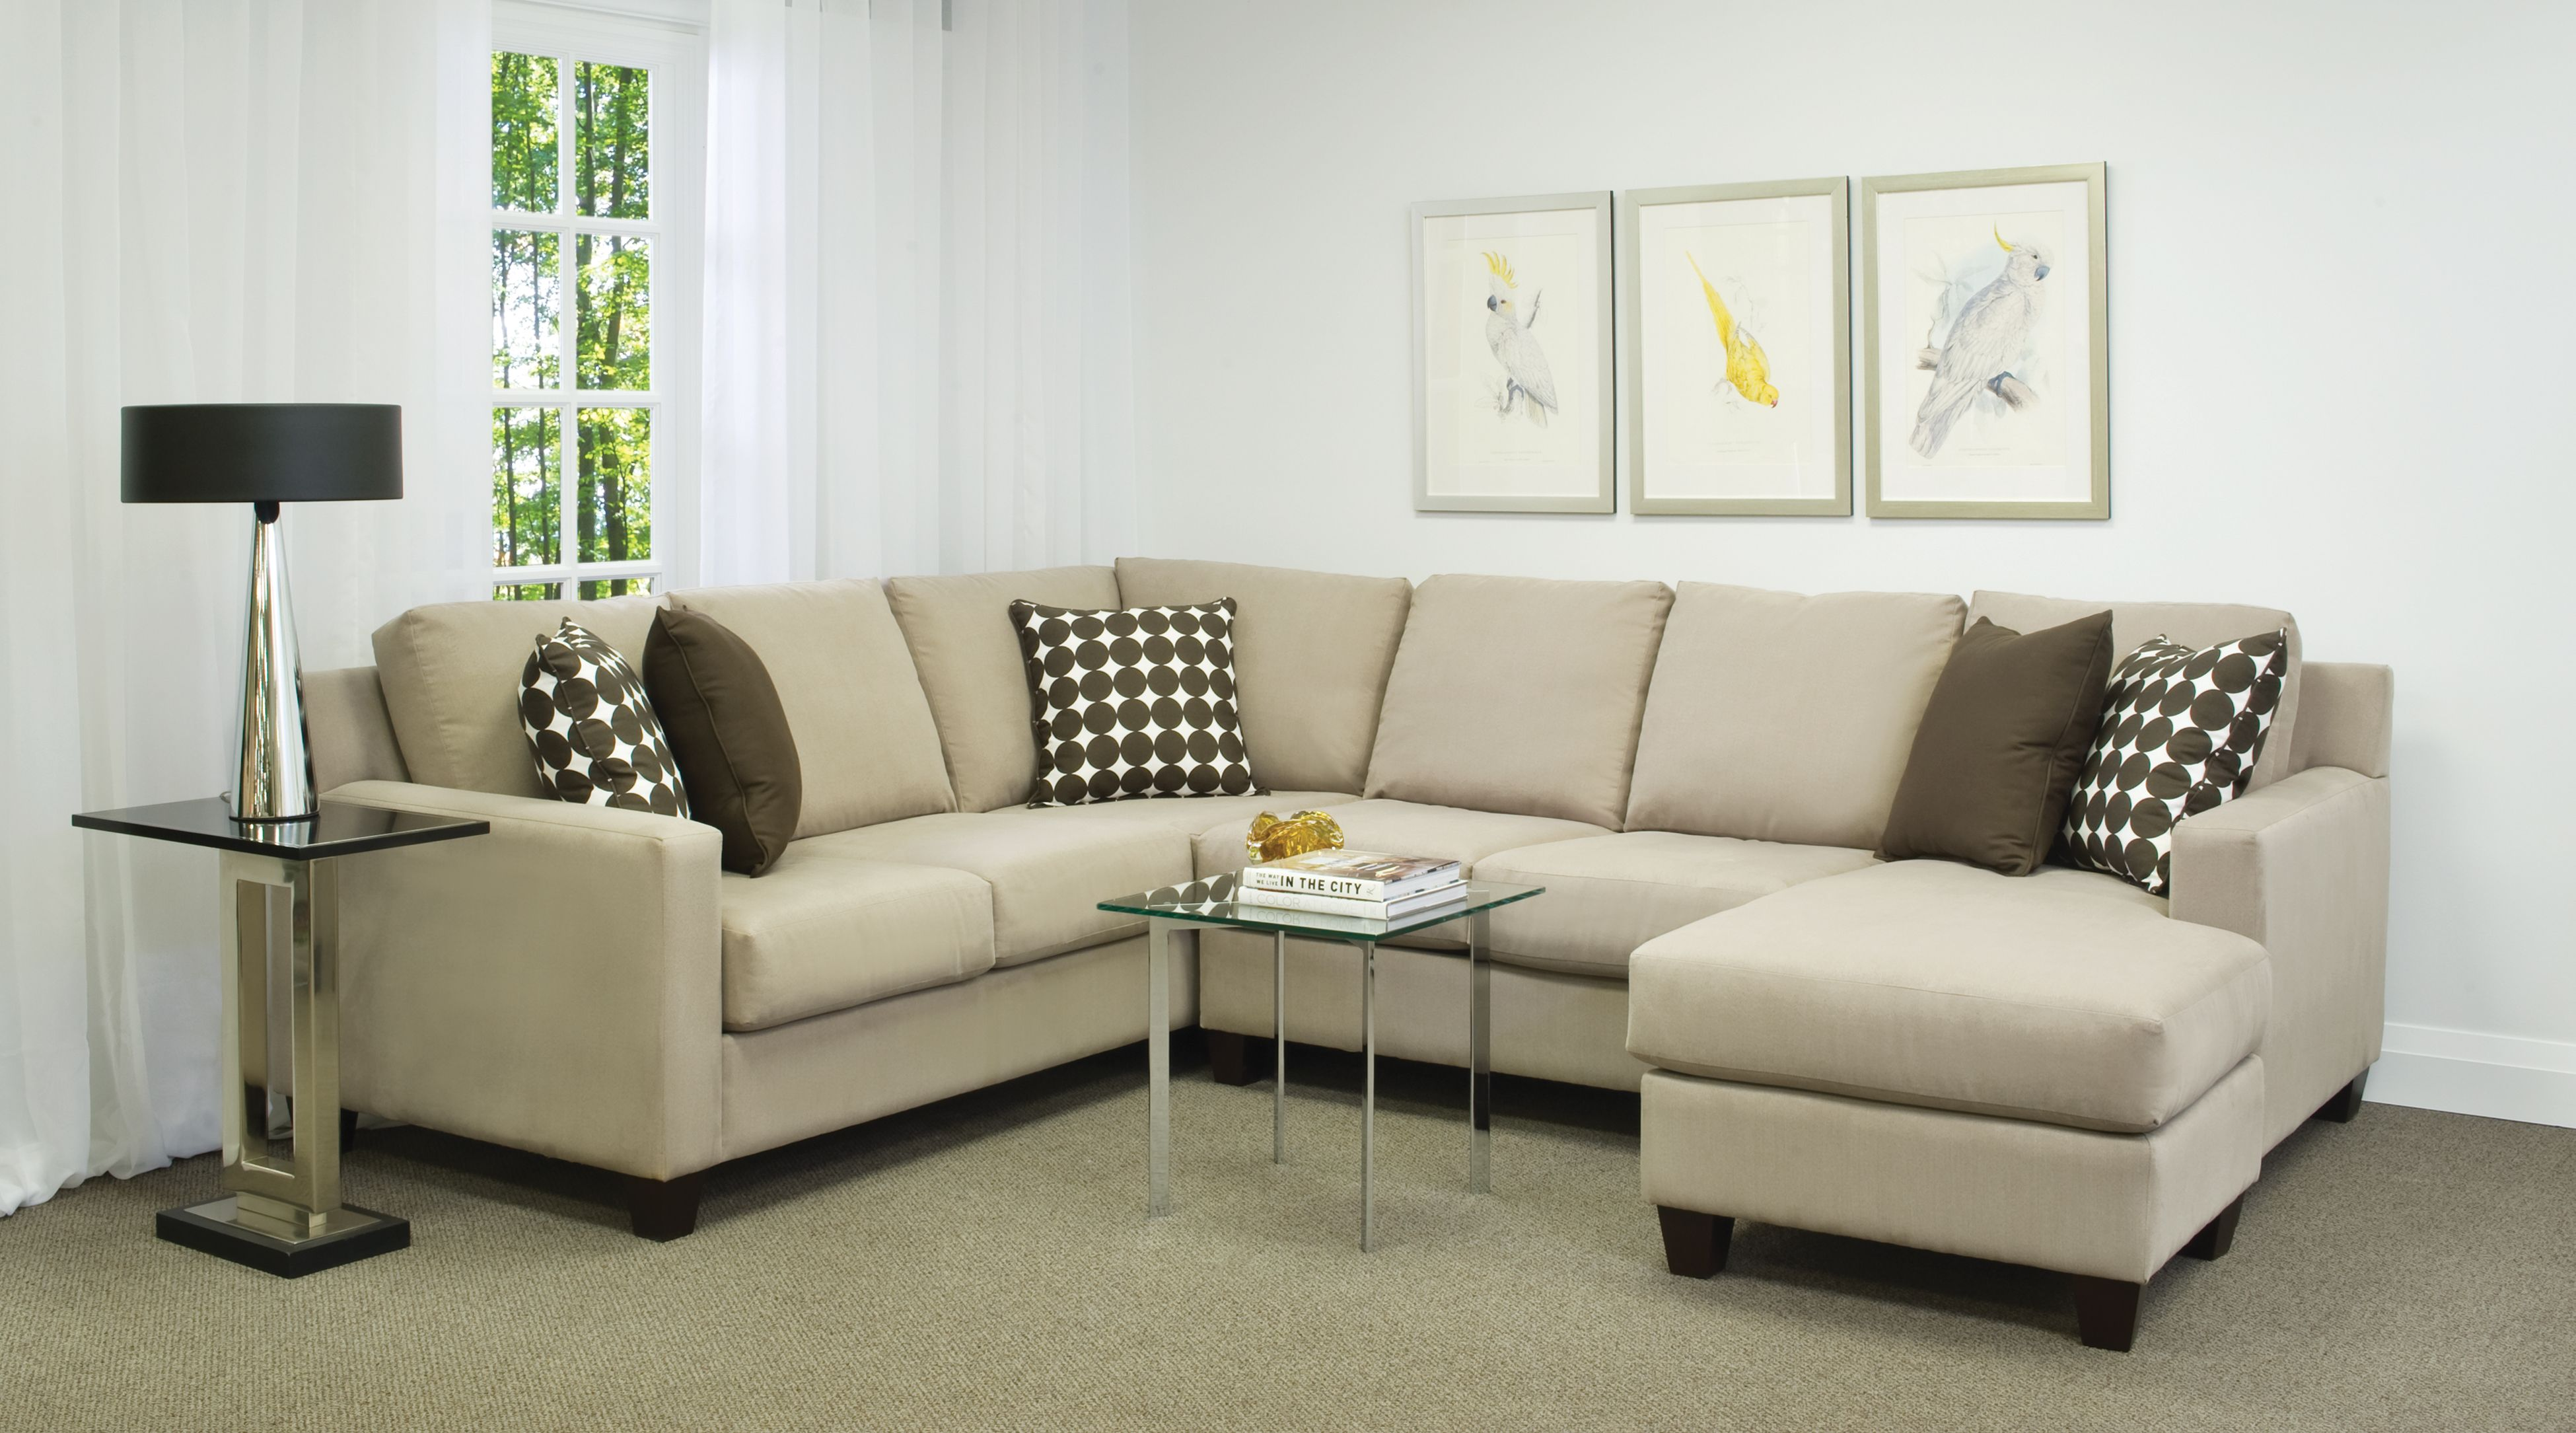 Beau Brentwood Classics Sectional Sofa   The Furniture You Select For The House  Will Assist In Conveying The Desired Class, Styl